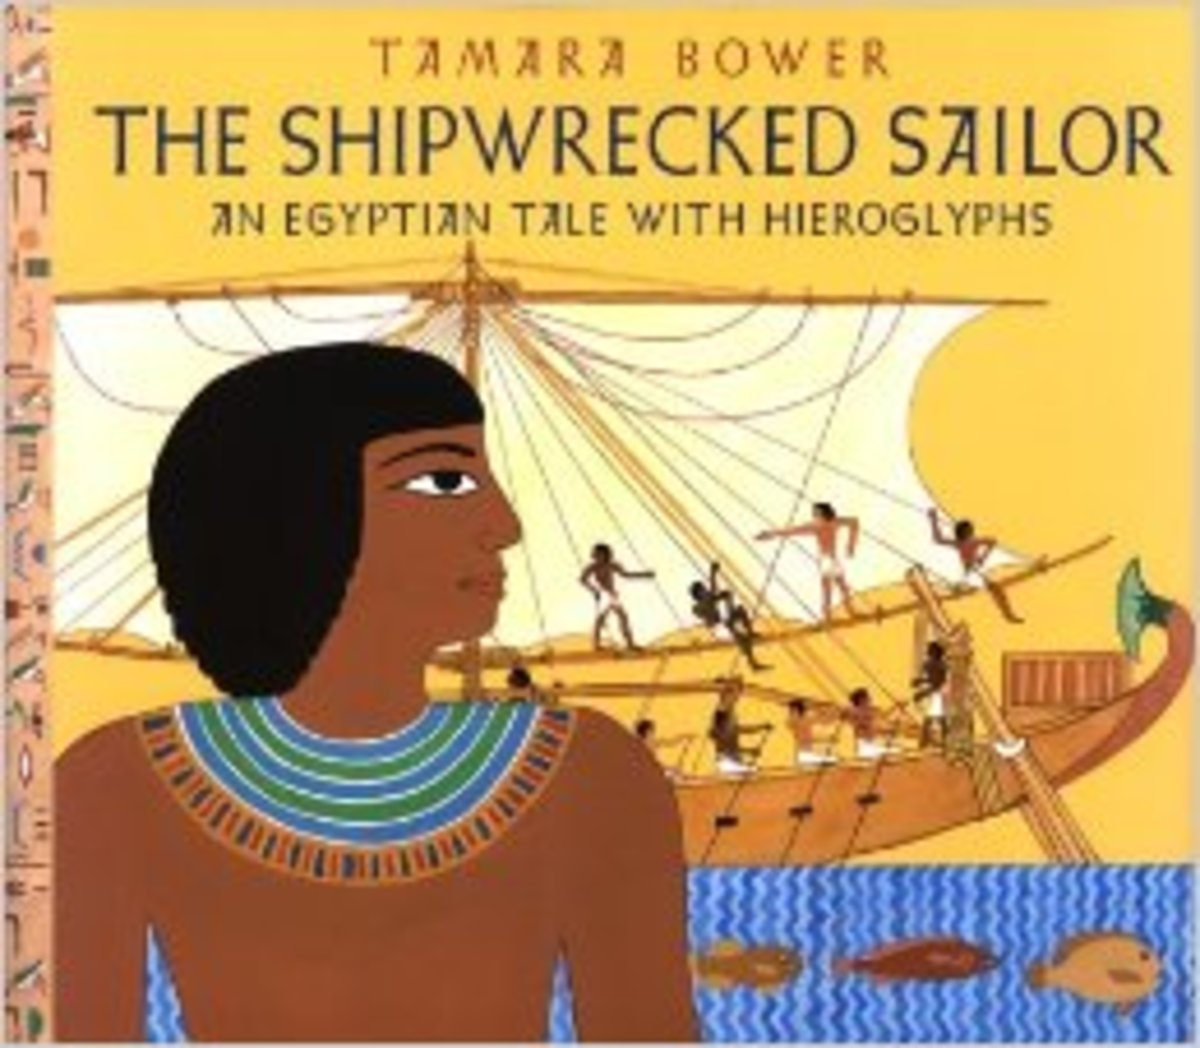 The Shipwrecked Sailor: An Egyptian Tale with Hieroglyphs by Tamara Bower